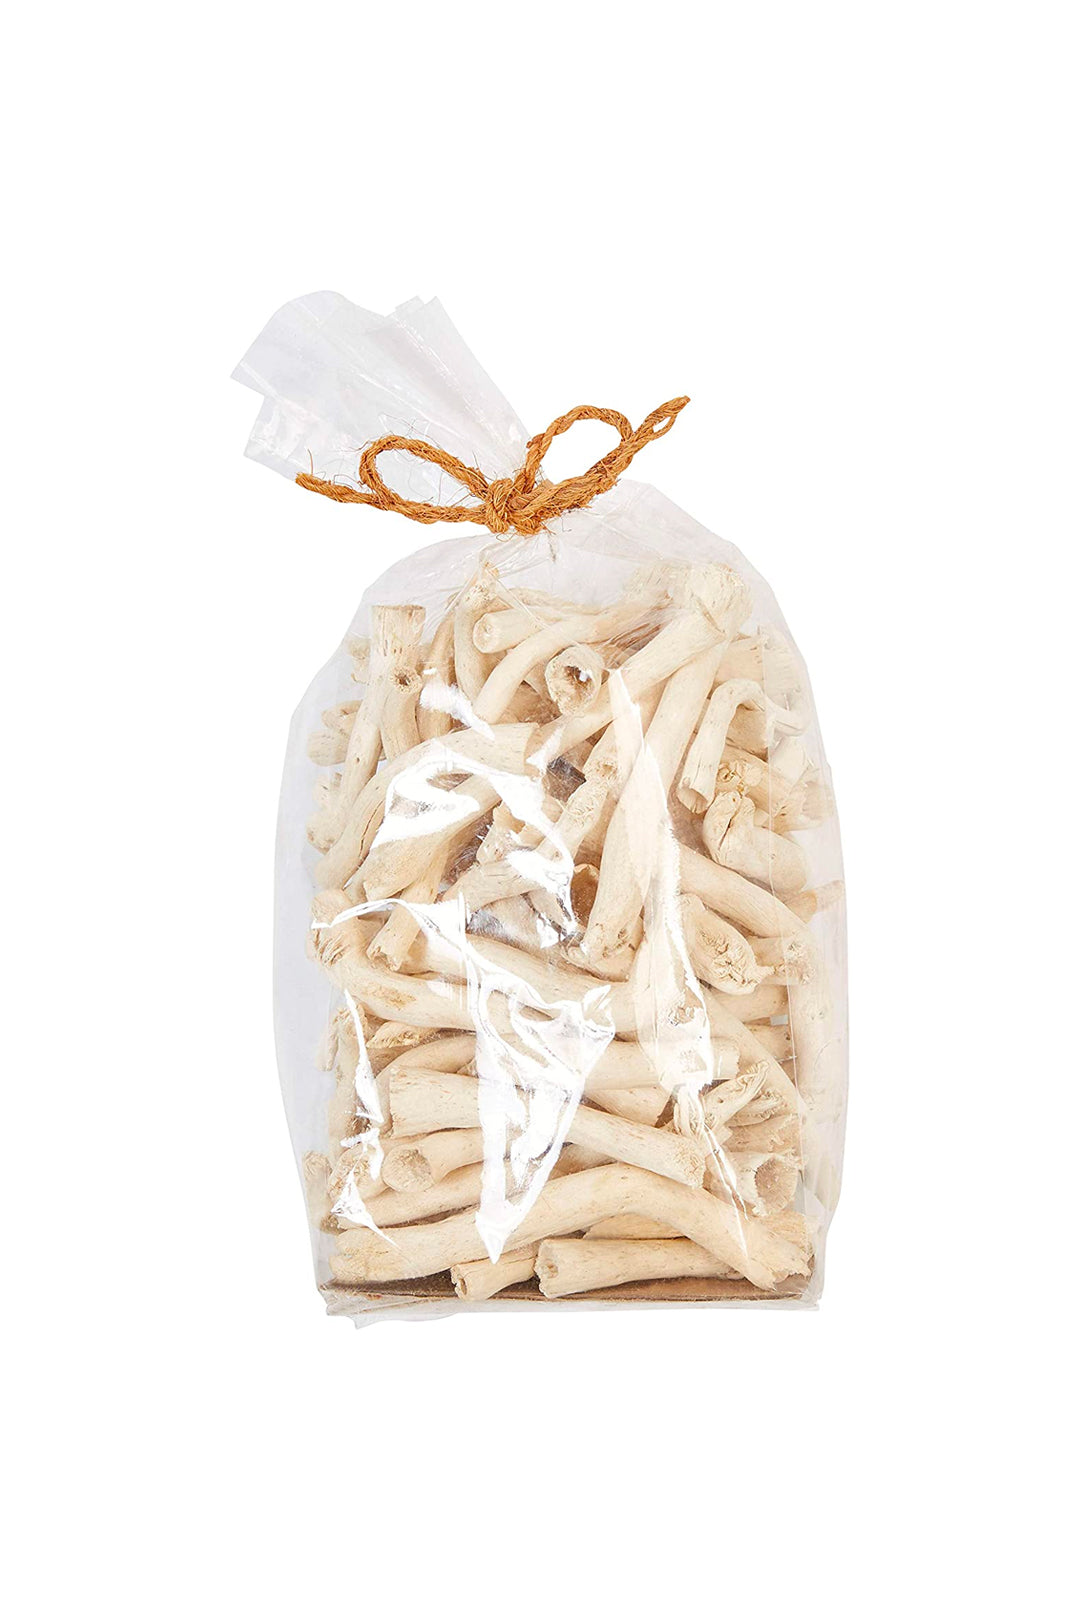 Bag of Dried Natural Cauliflower Root